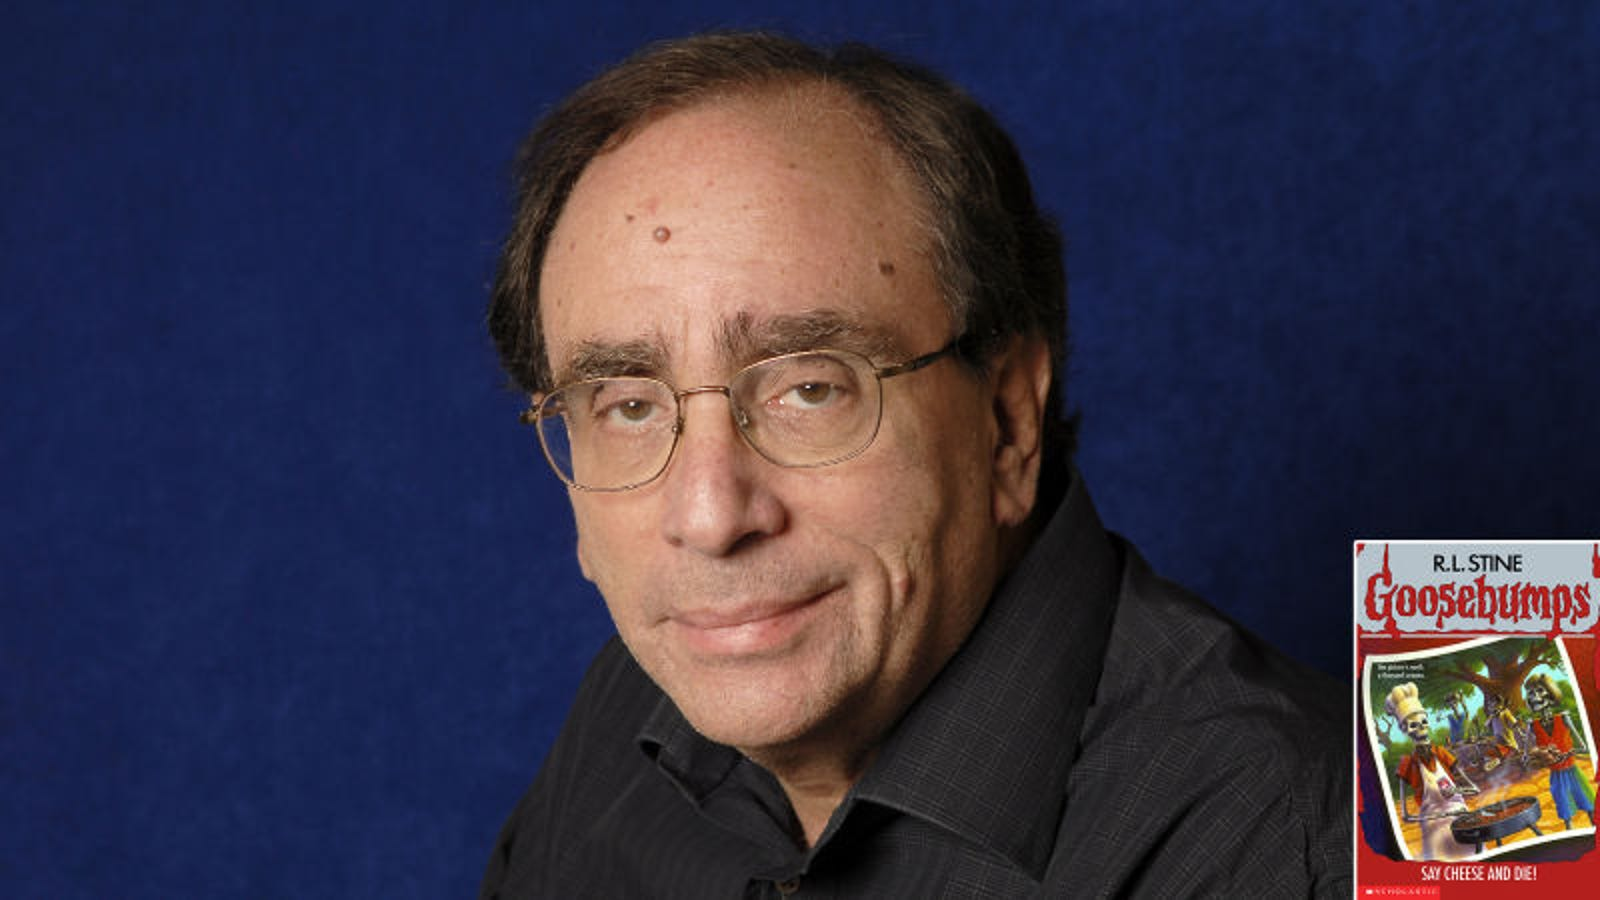 R.L. Stine Admits Every Book He's Written Directly Dictated To Him By God